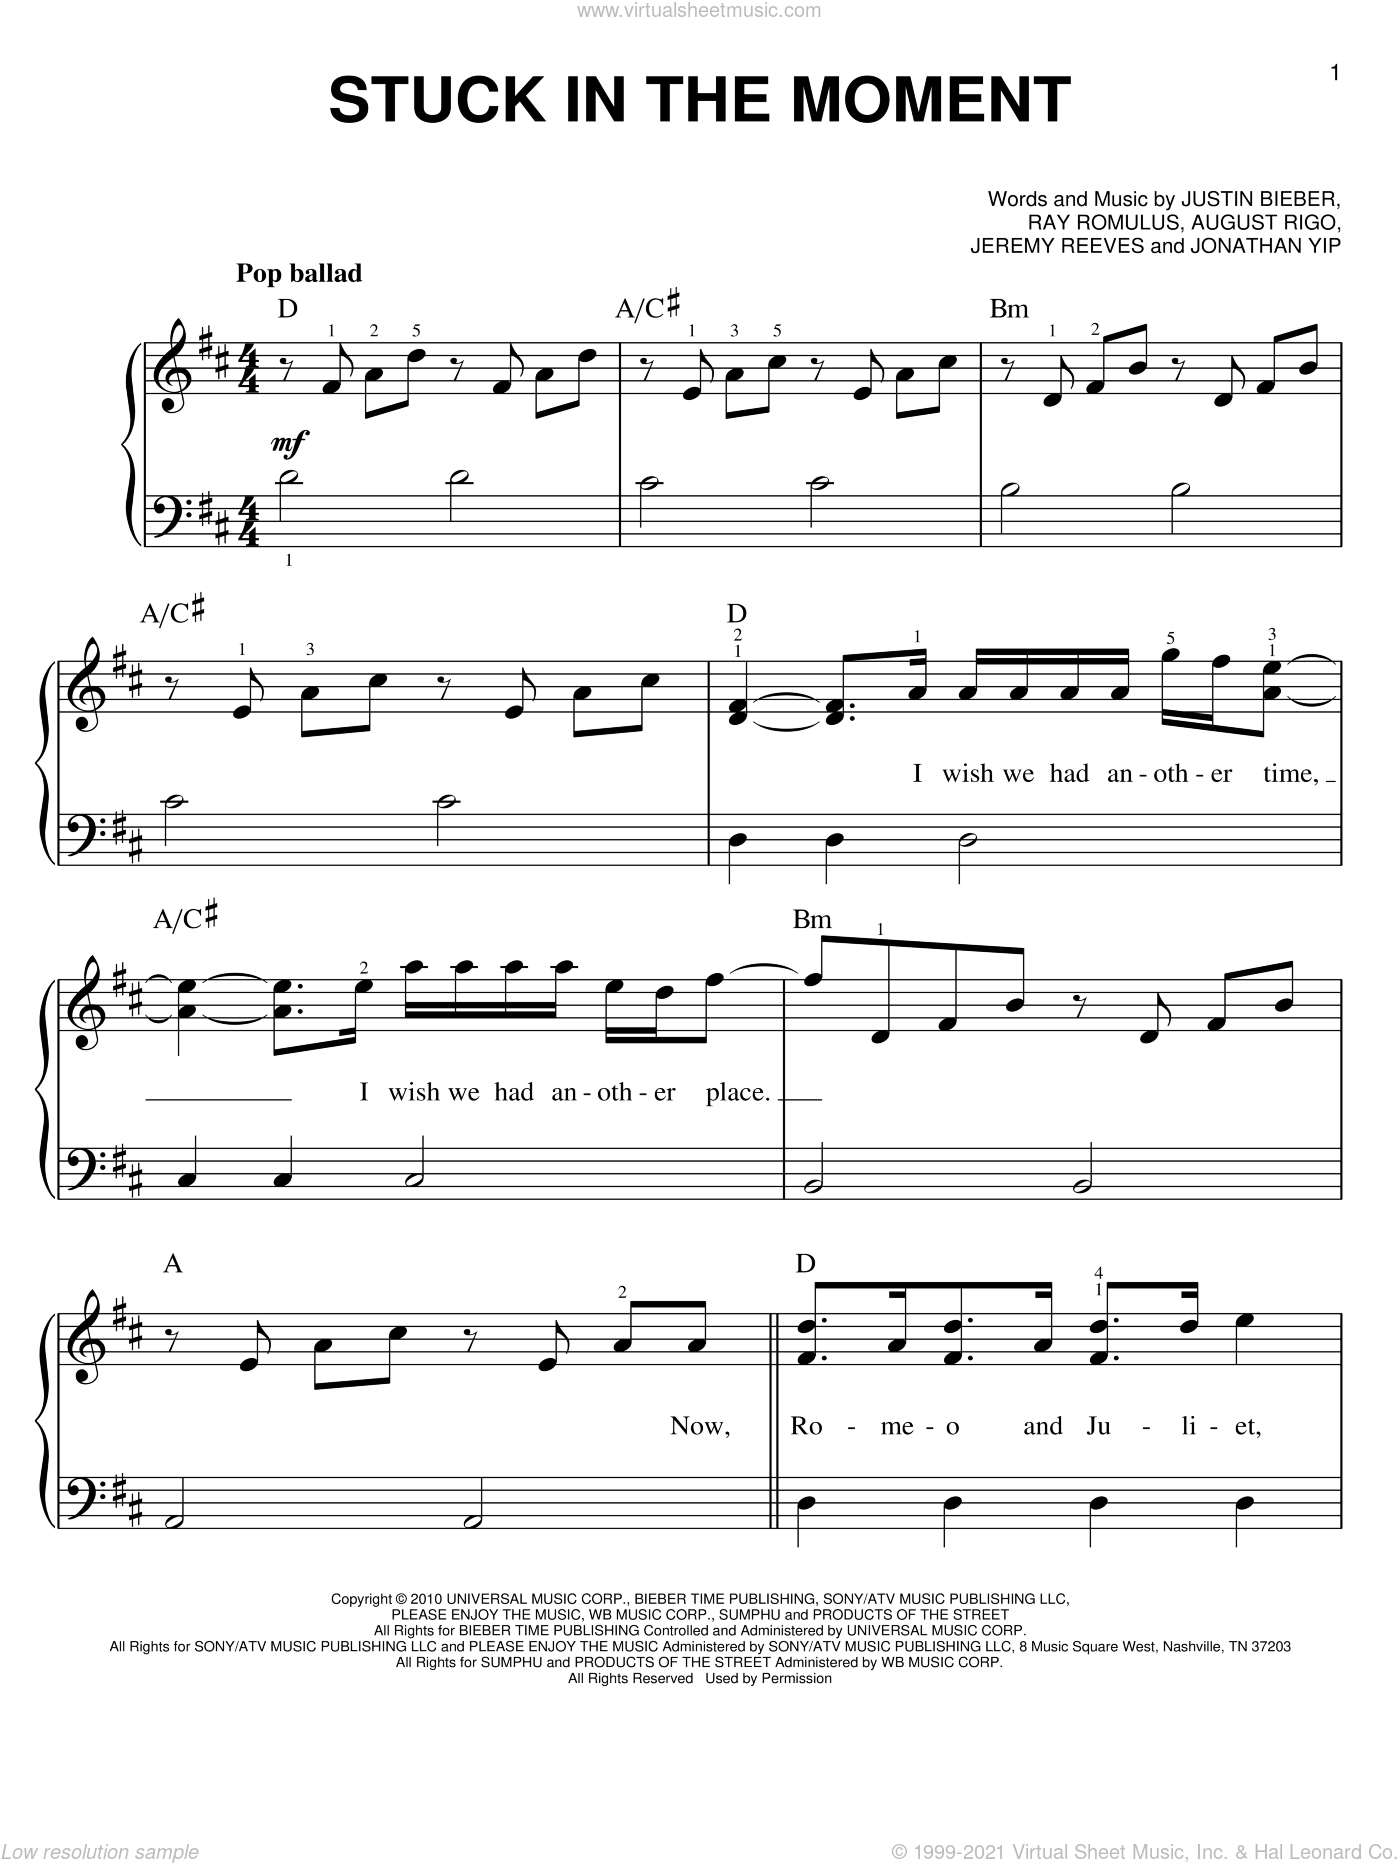 Stuck In The Moment sheet music for piano solo by Ray Romulus, Jeremy Reeves, Jonathan Yip and Justin Bieber